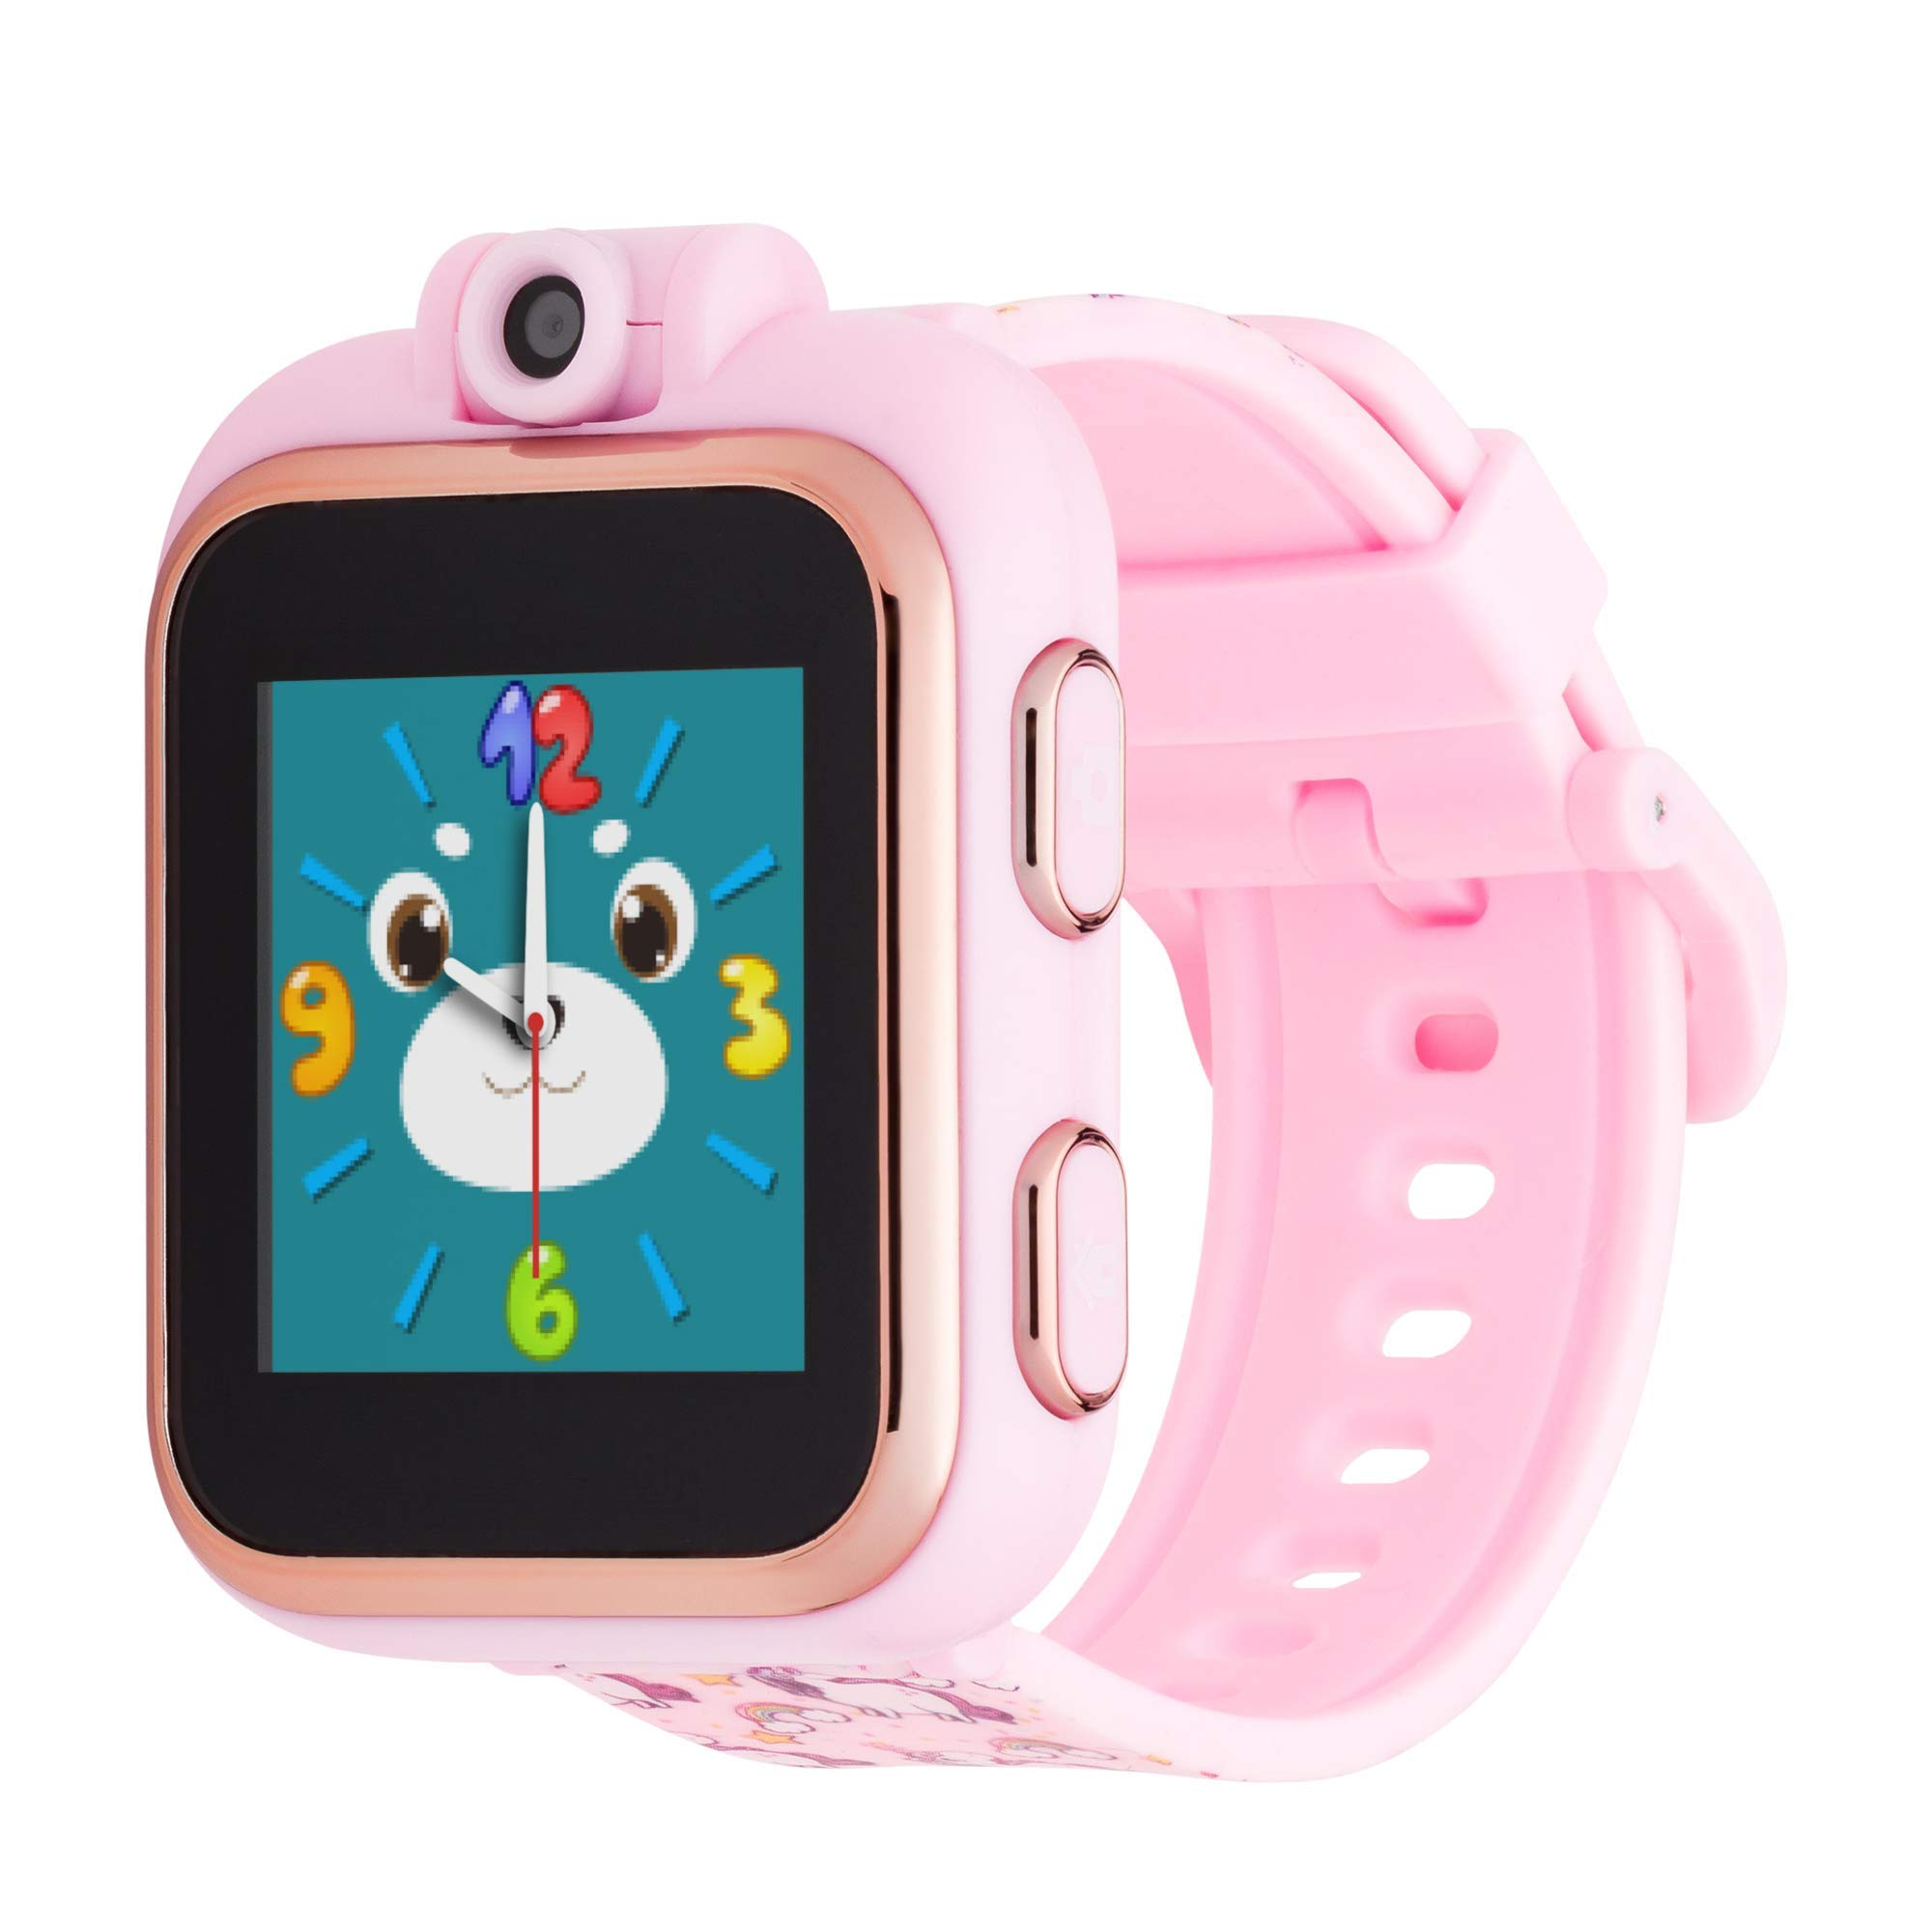 Playzoom iTouch Kids Smart Watch with Digital Camera and Video Recorder (Pink Unicorns) by    iTOUCH  (Image #1)